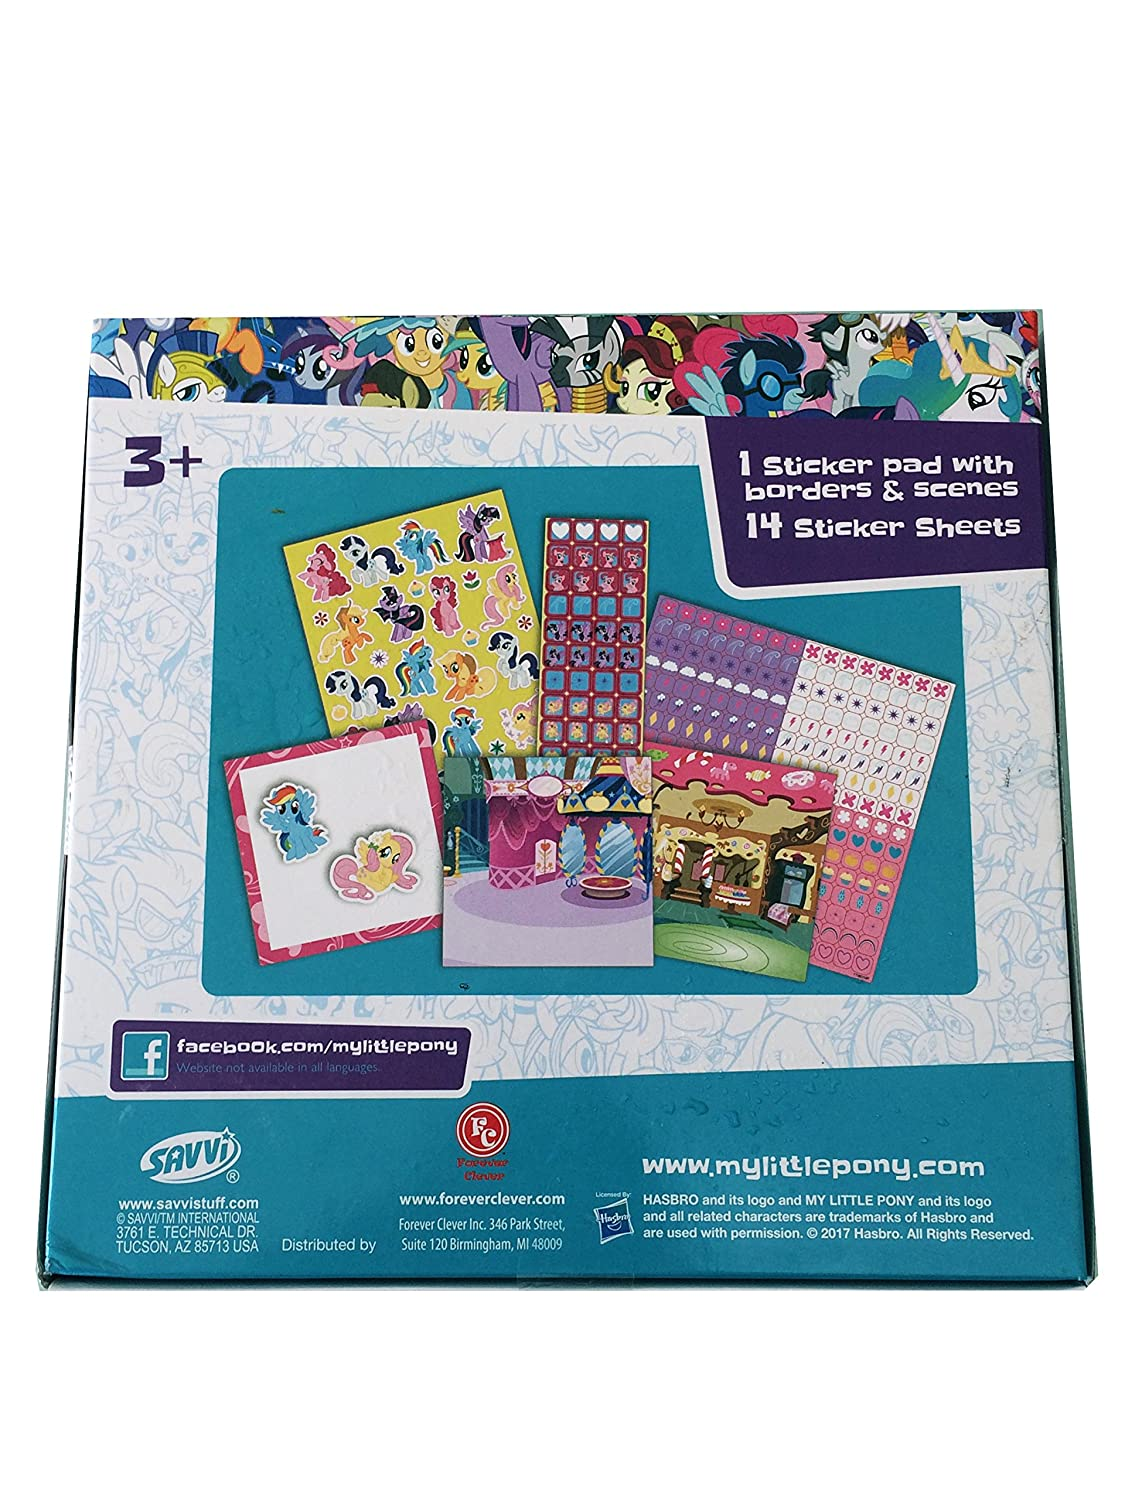 Secret for Longevity Little Pony Horse 1000 Stickers Sheet Roll w// Book Pad Gift Set Party Favor Scrapbooking